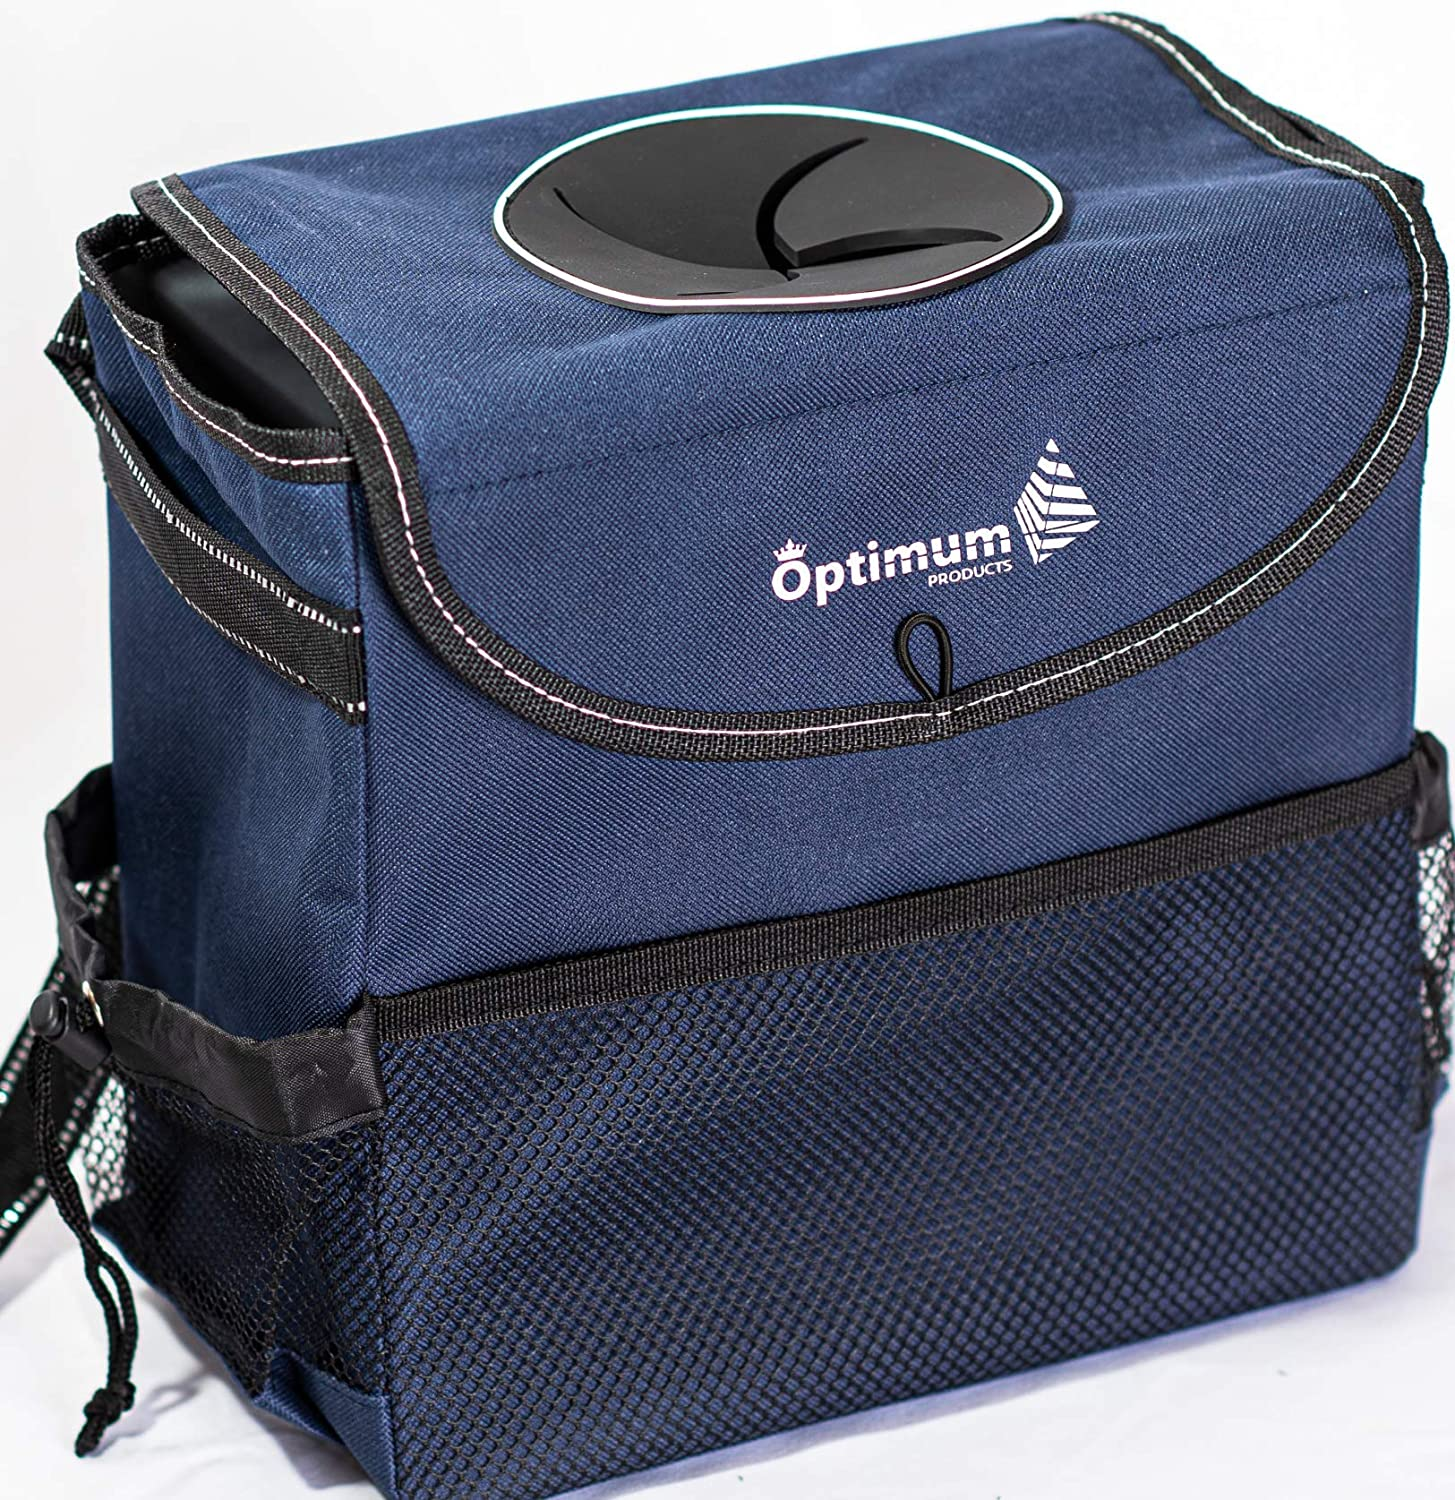 Trash Bags for Car by Optimum Products Luxury Dark Blue For Men Women and Kids Waterproof Collapsible Console Bigger Design Pockets Cup holder Hanging Bags with Lids Hang it on Headrest